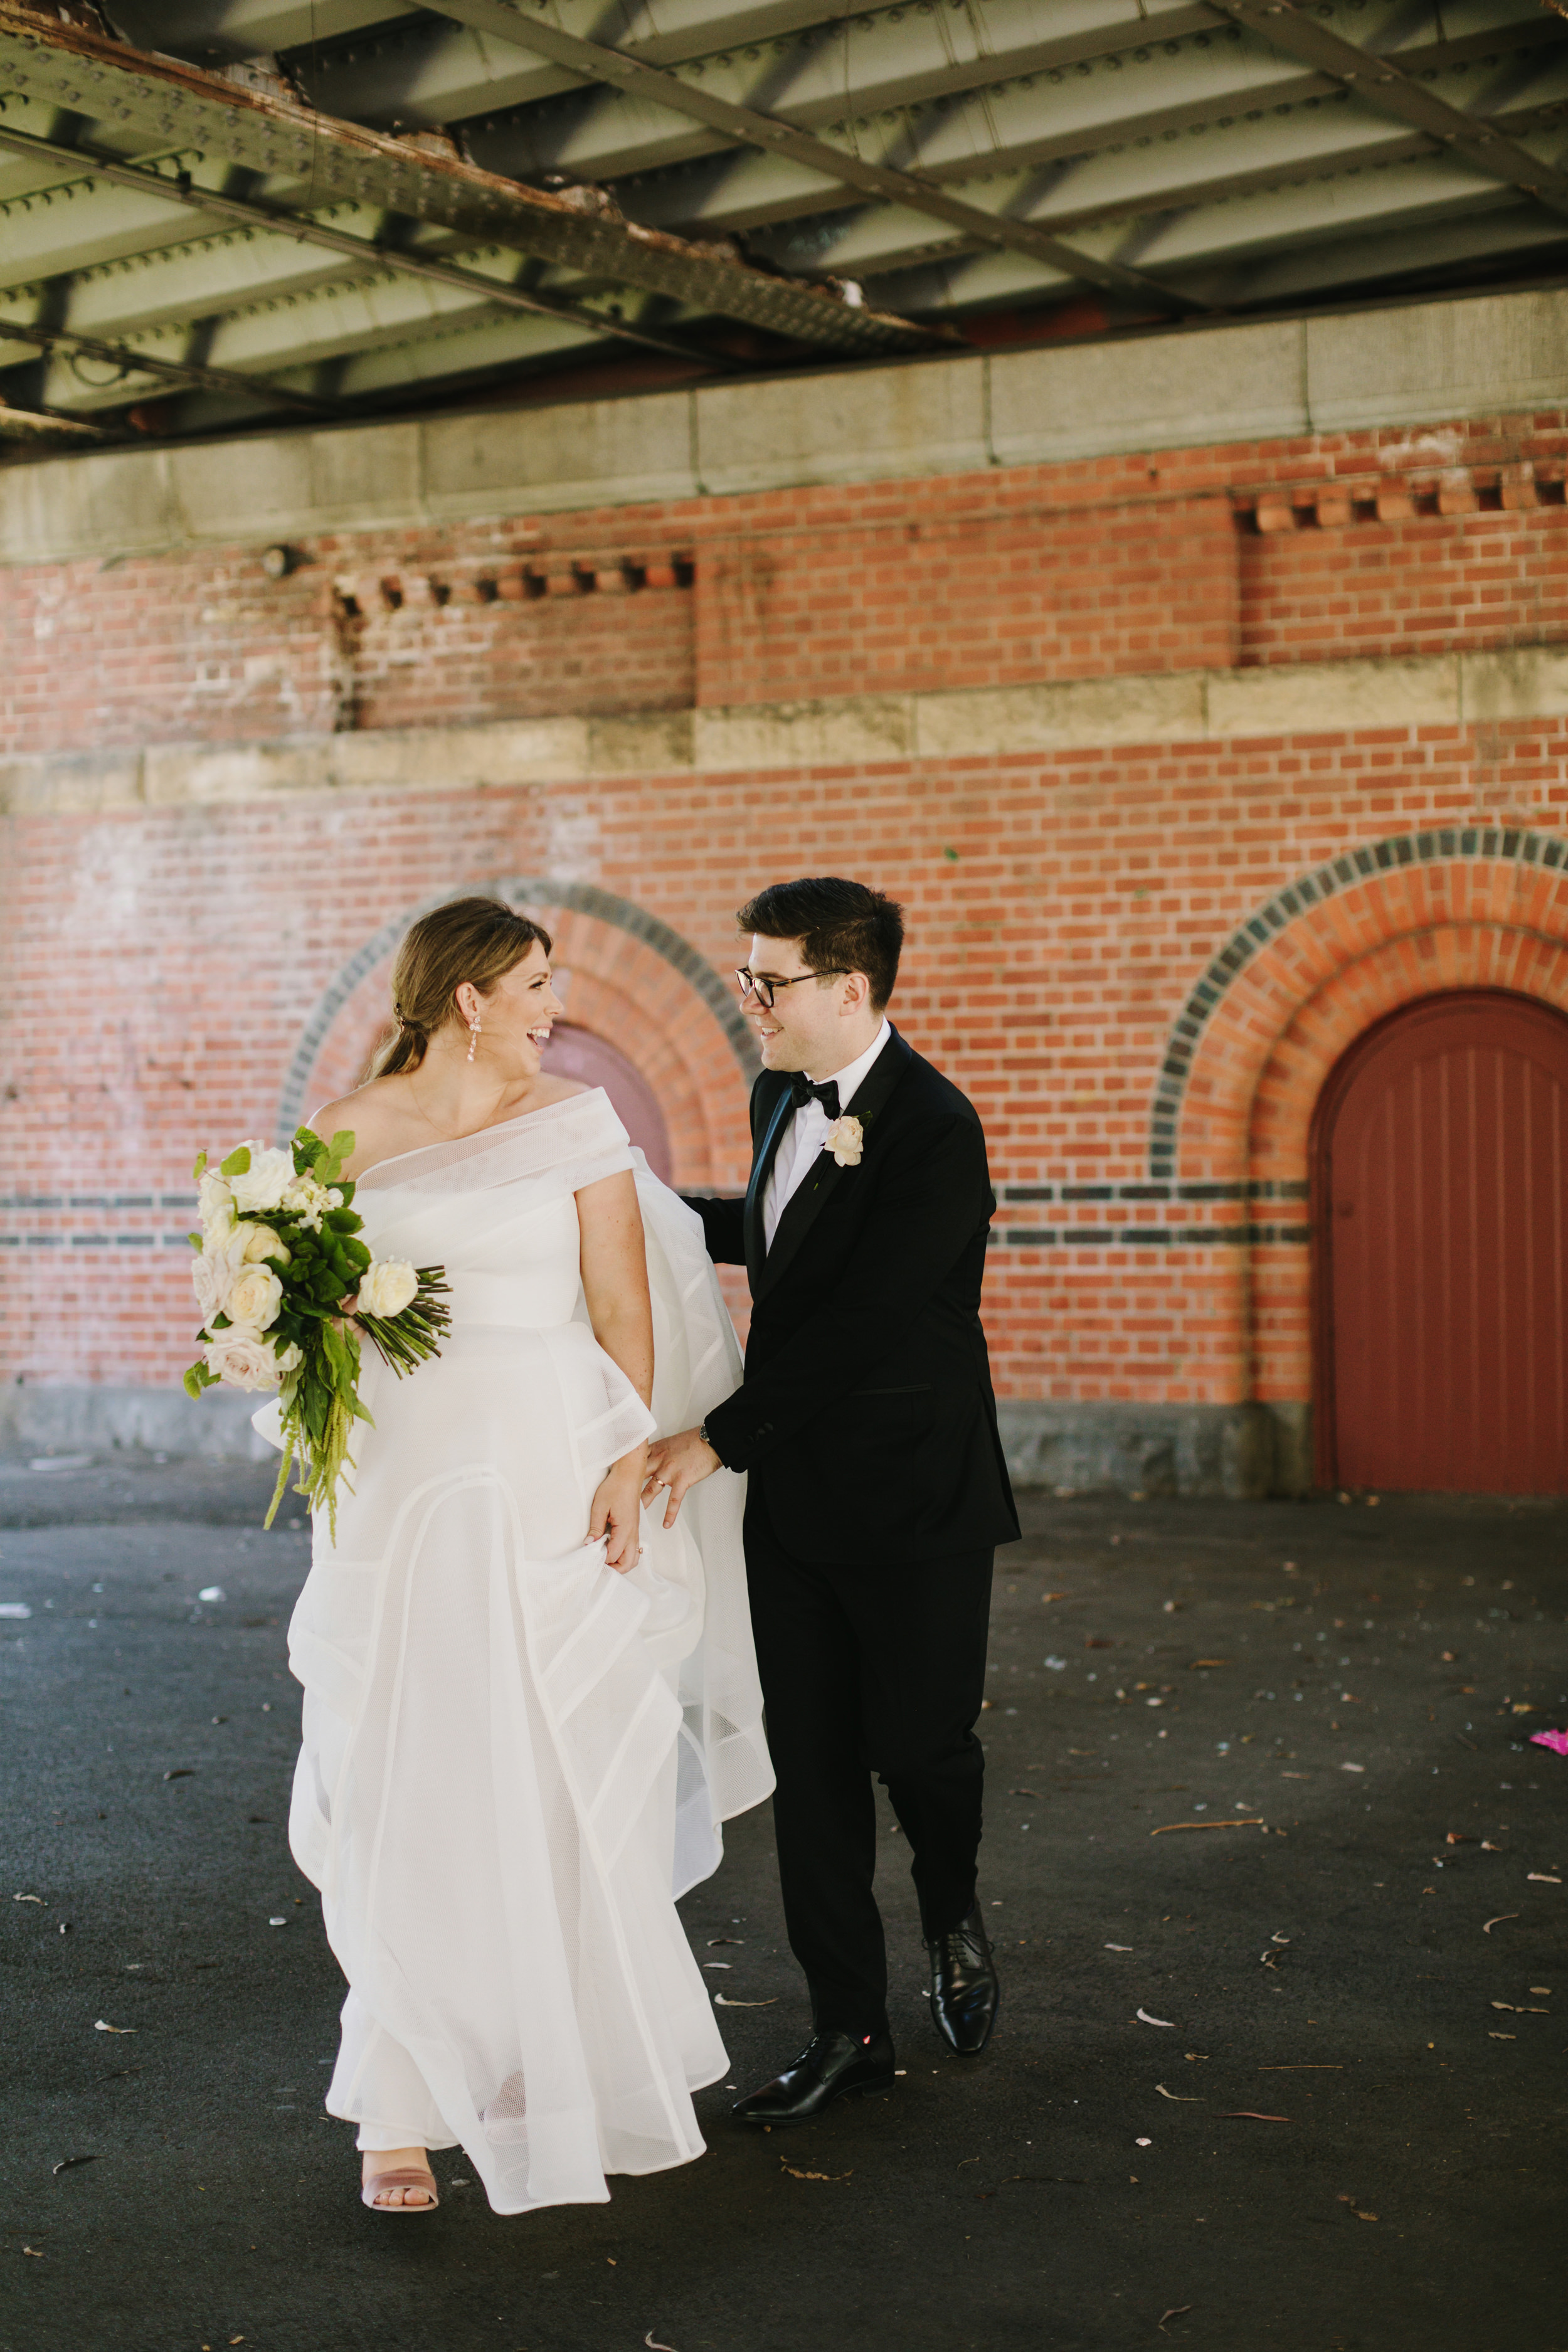 Melbourne_City_Rooftop_Wedding_Tyson_Brigette075.JPG